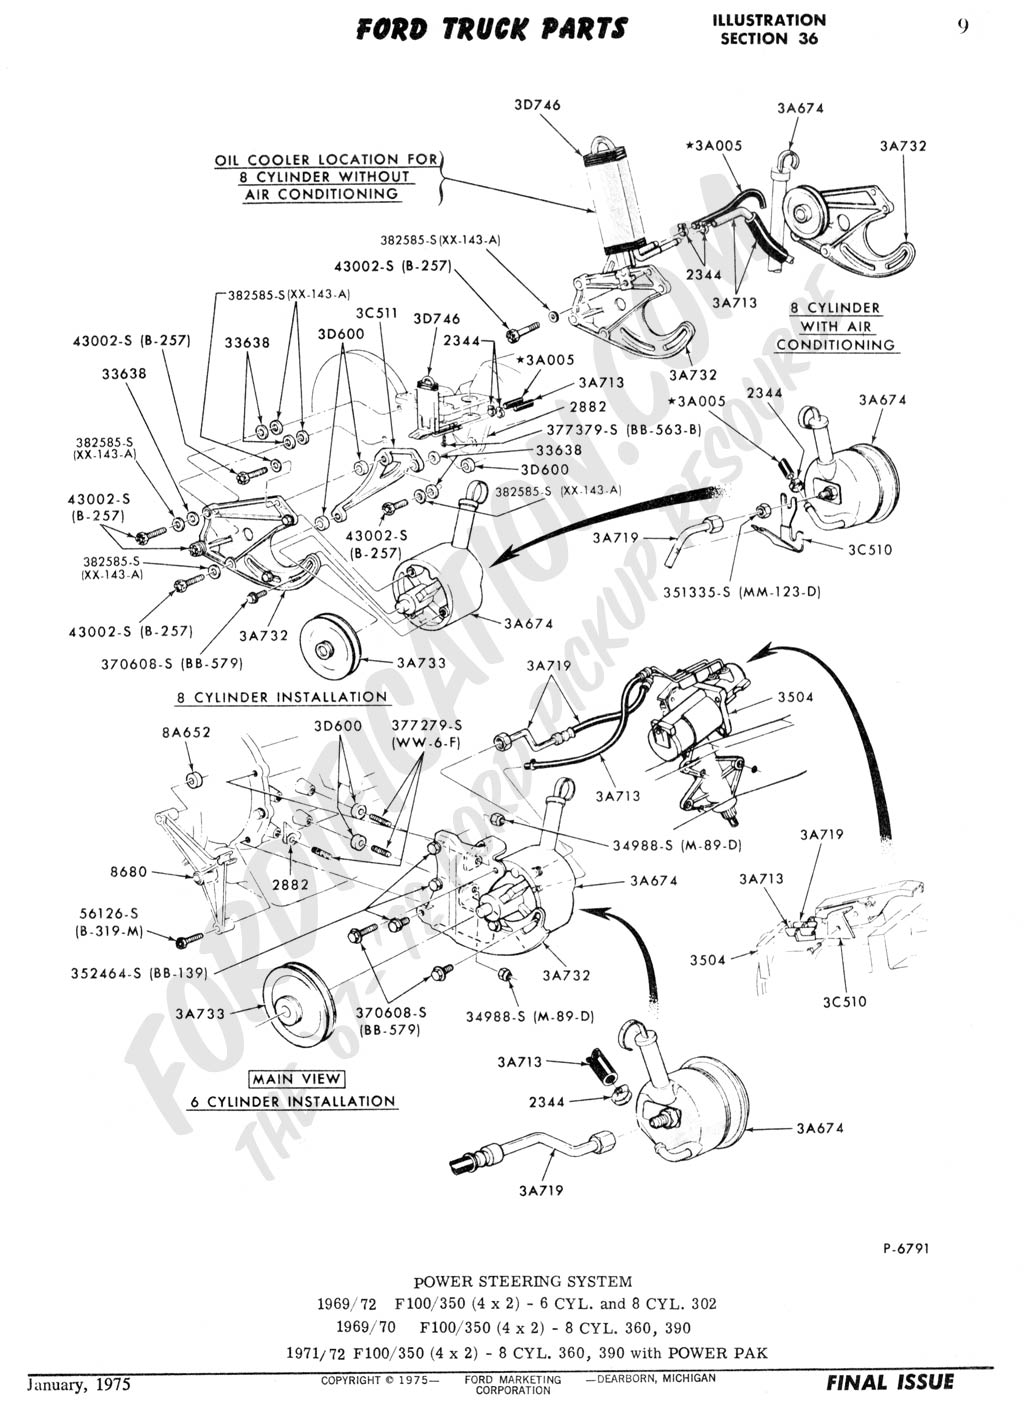 Power Steering Help